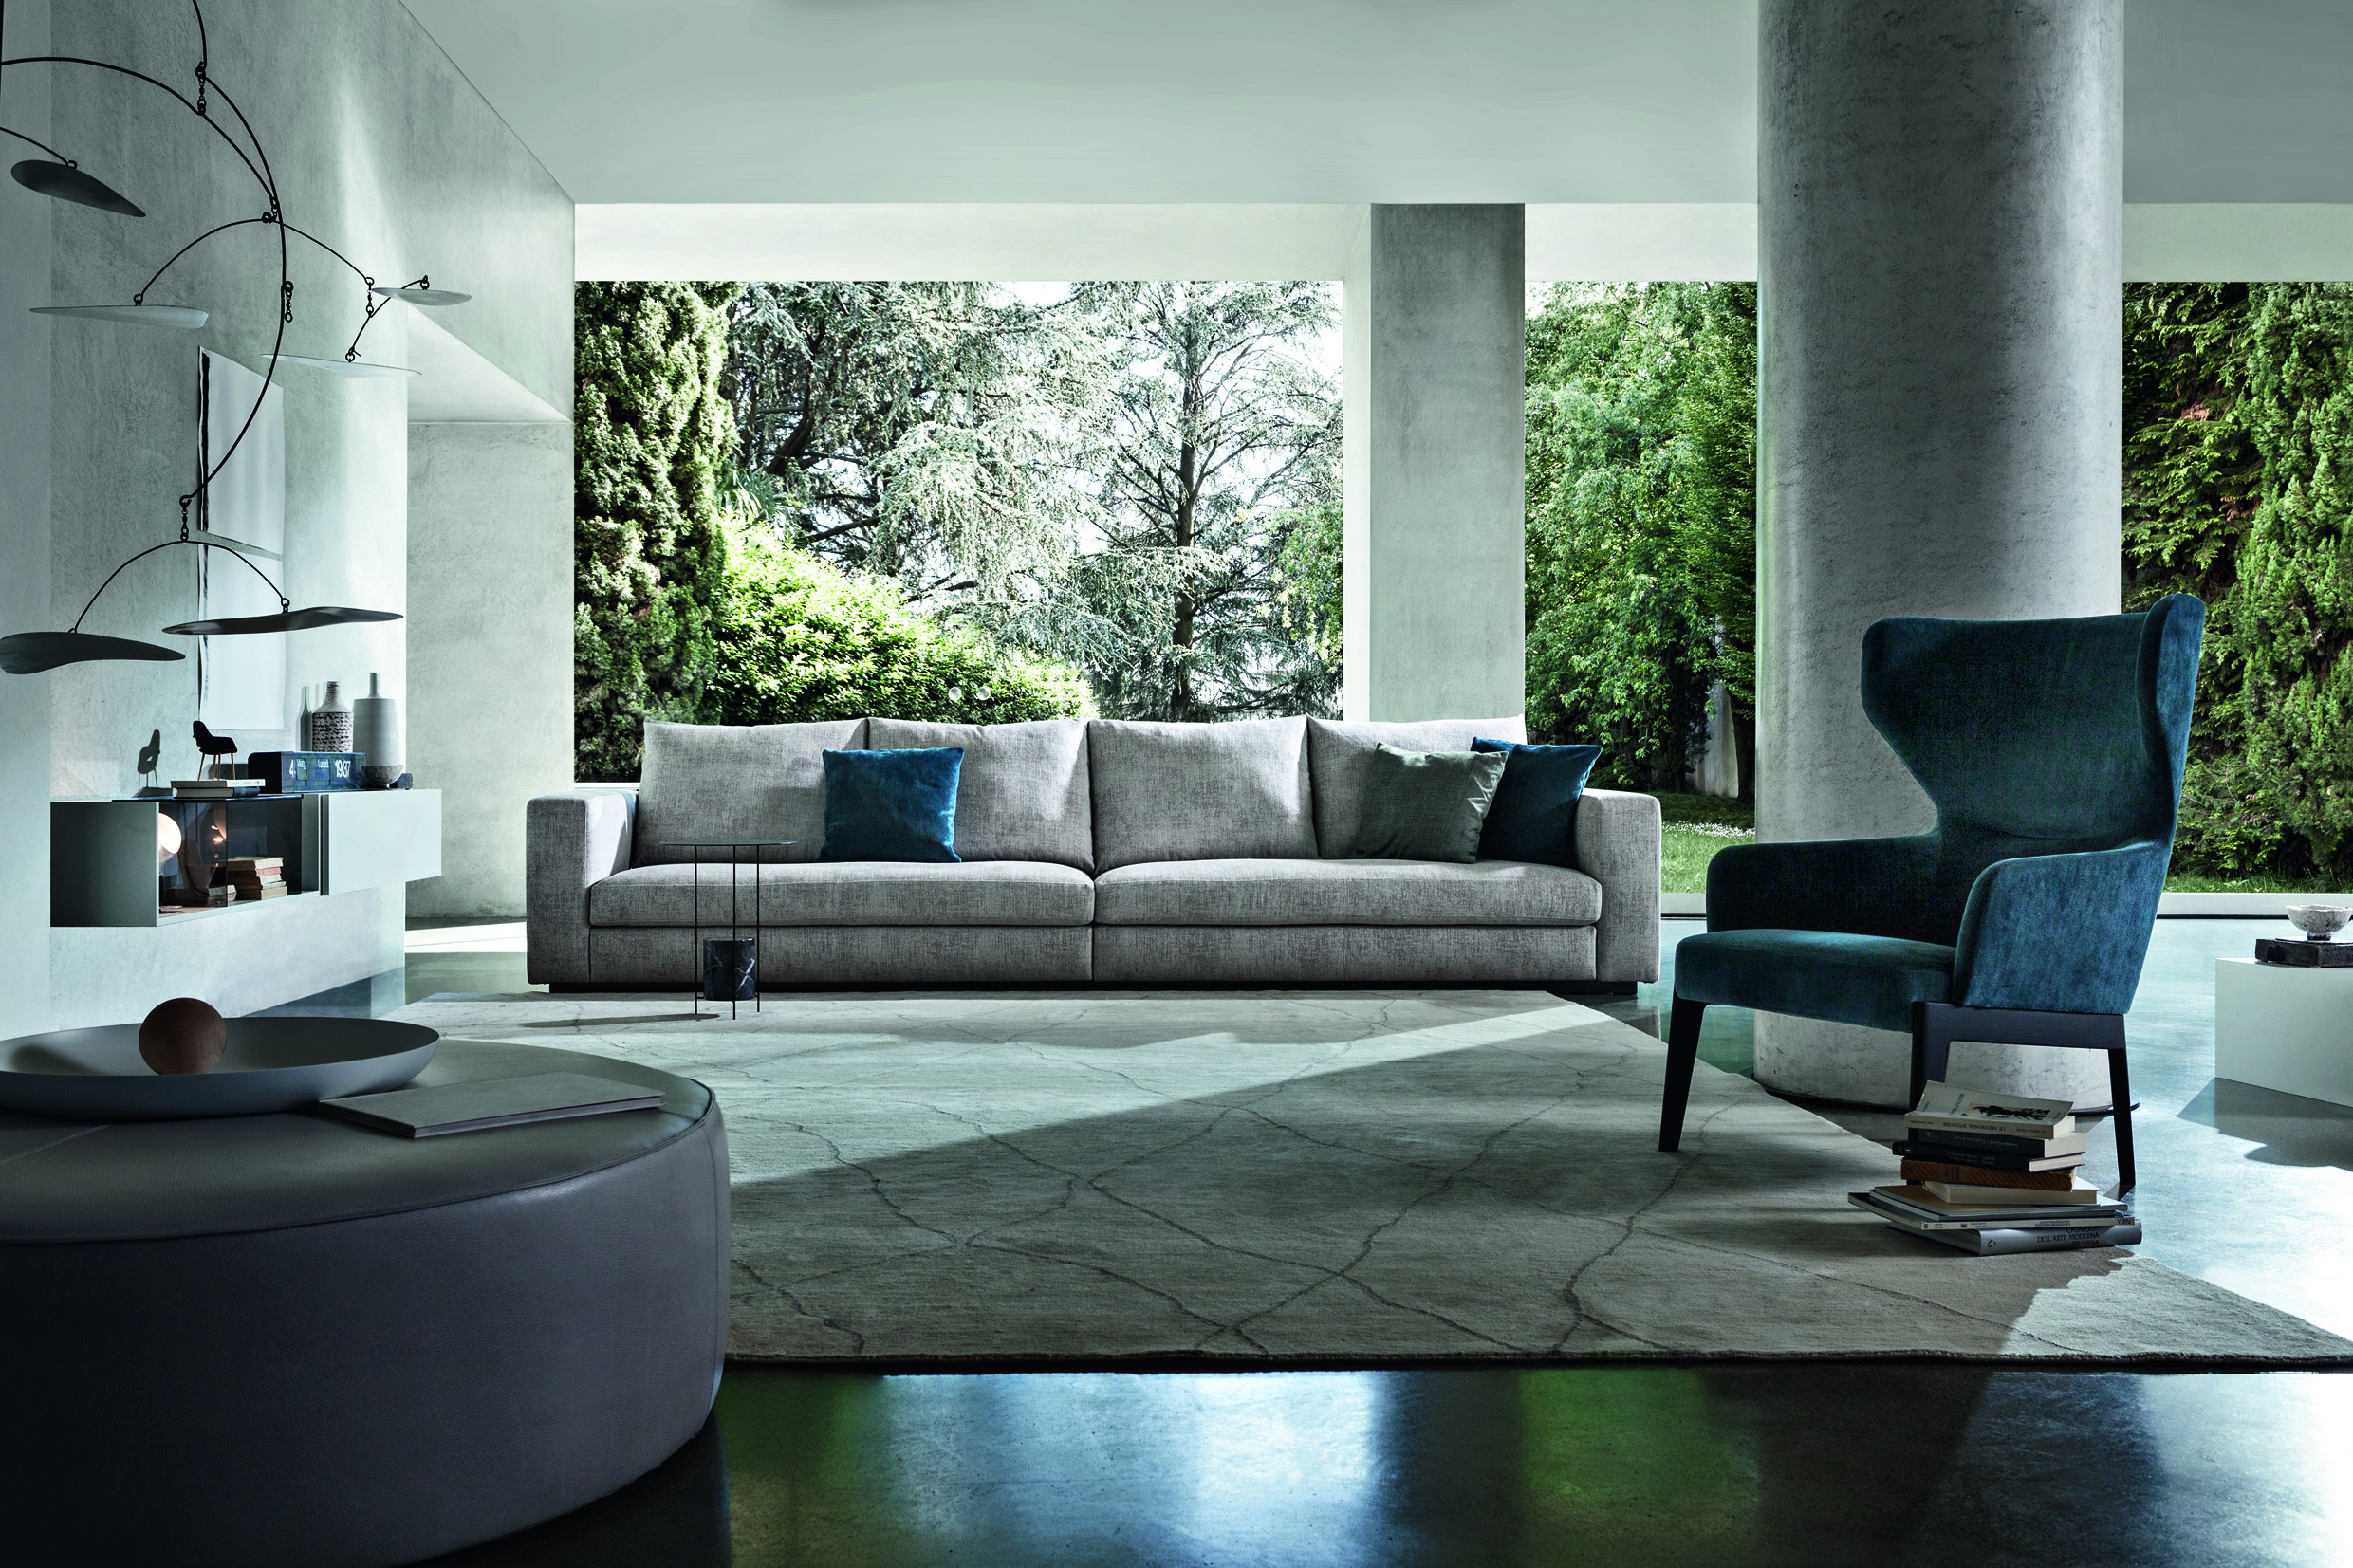 Molteni c m bel sofa bettsysteme pfannes virnich for Molteni and dada